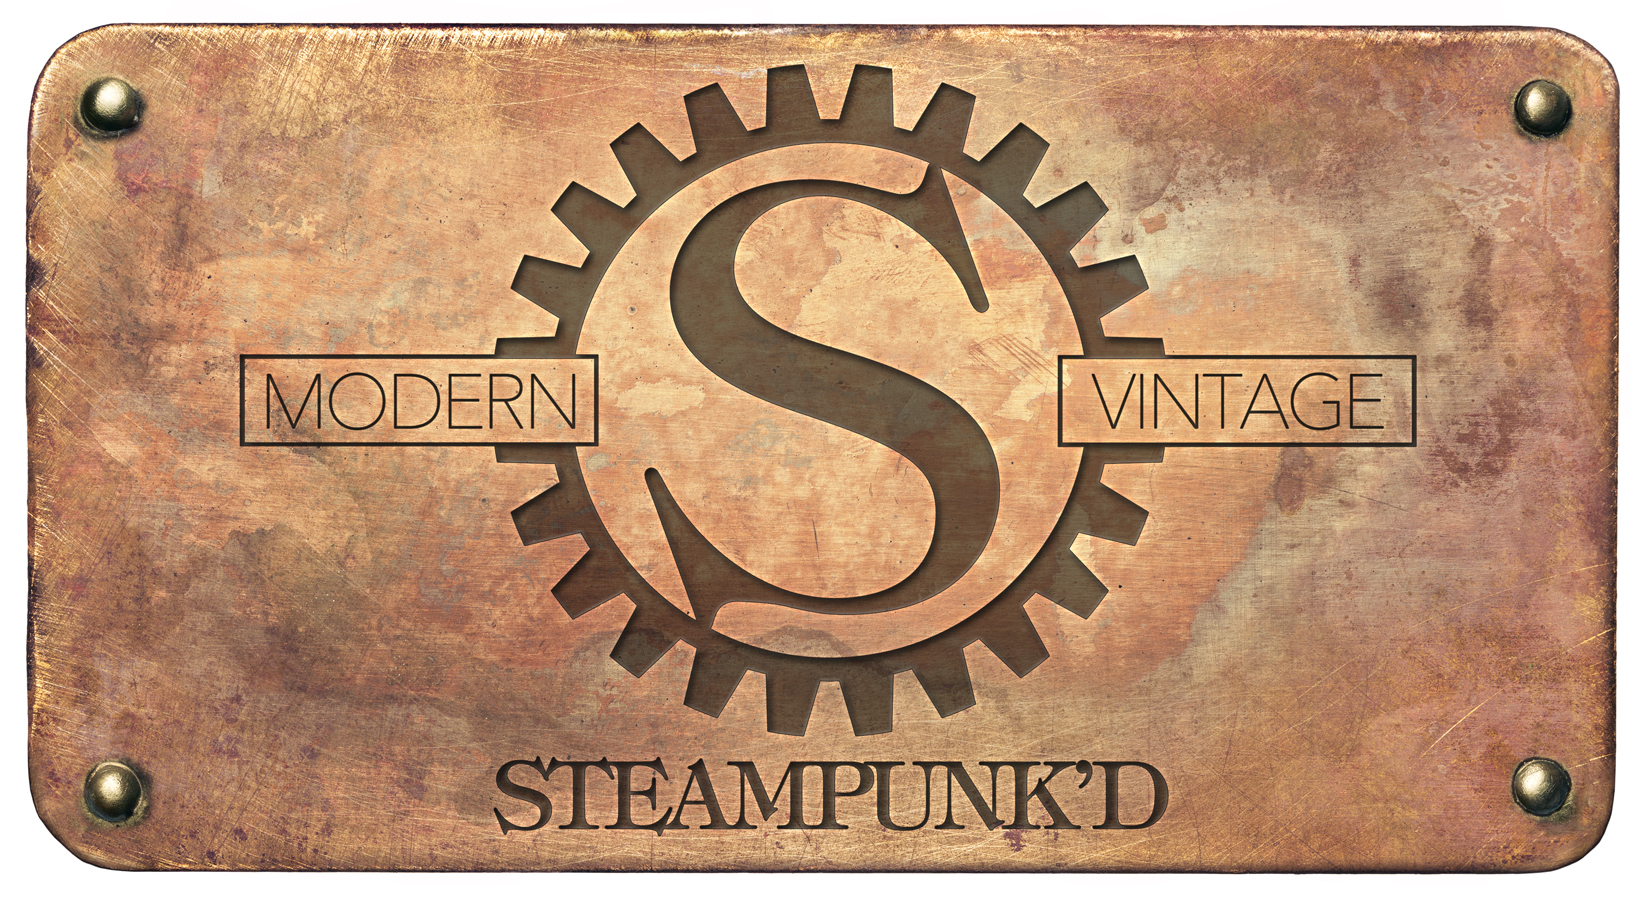 Steam Punk'd